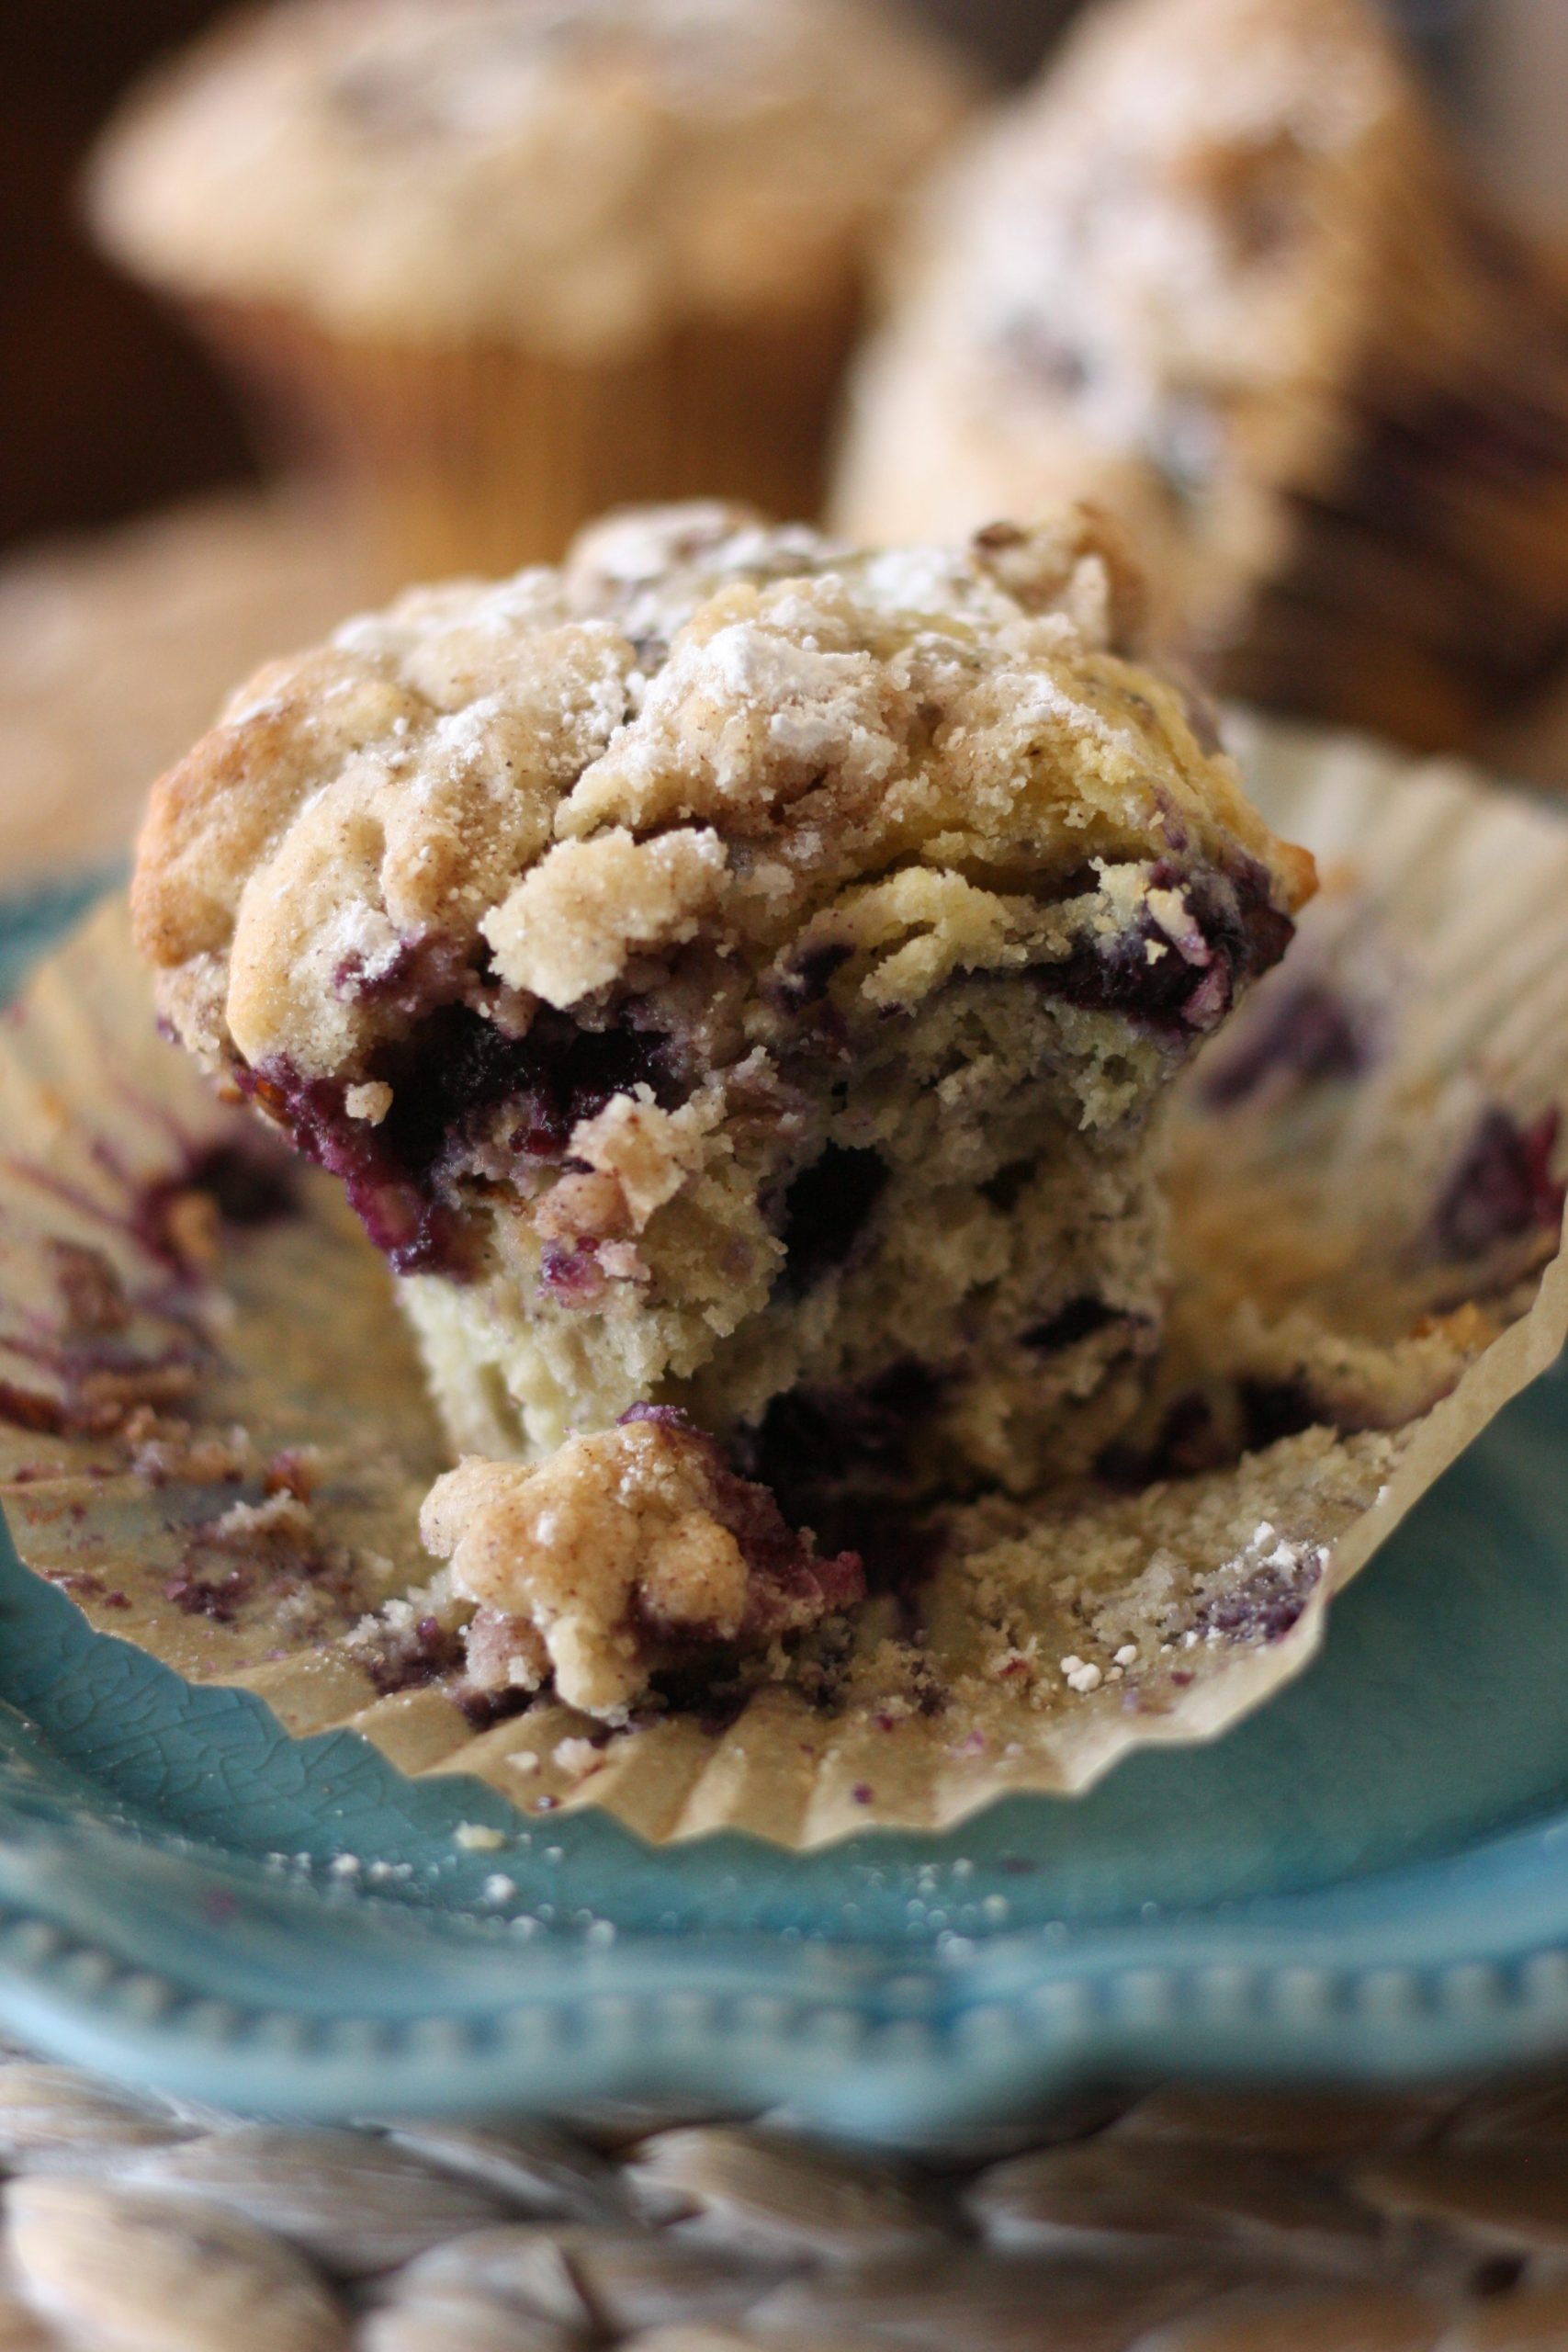 blueberry crumb muffins on a blue plate